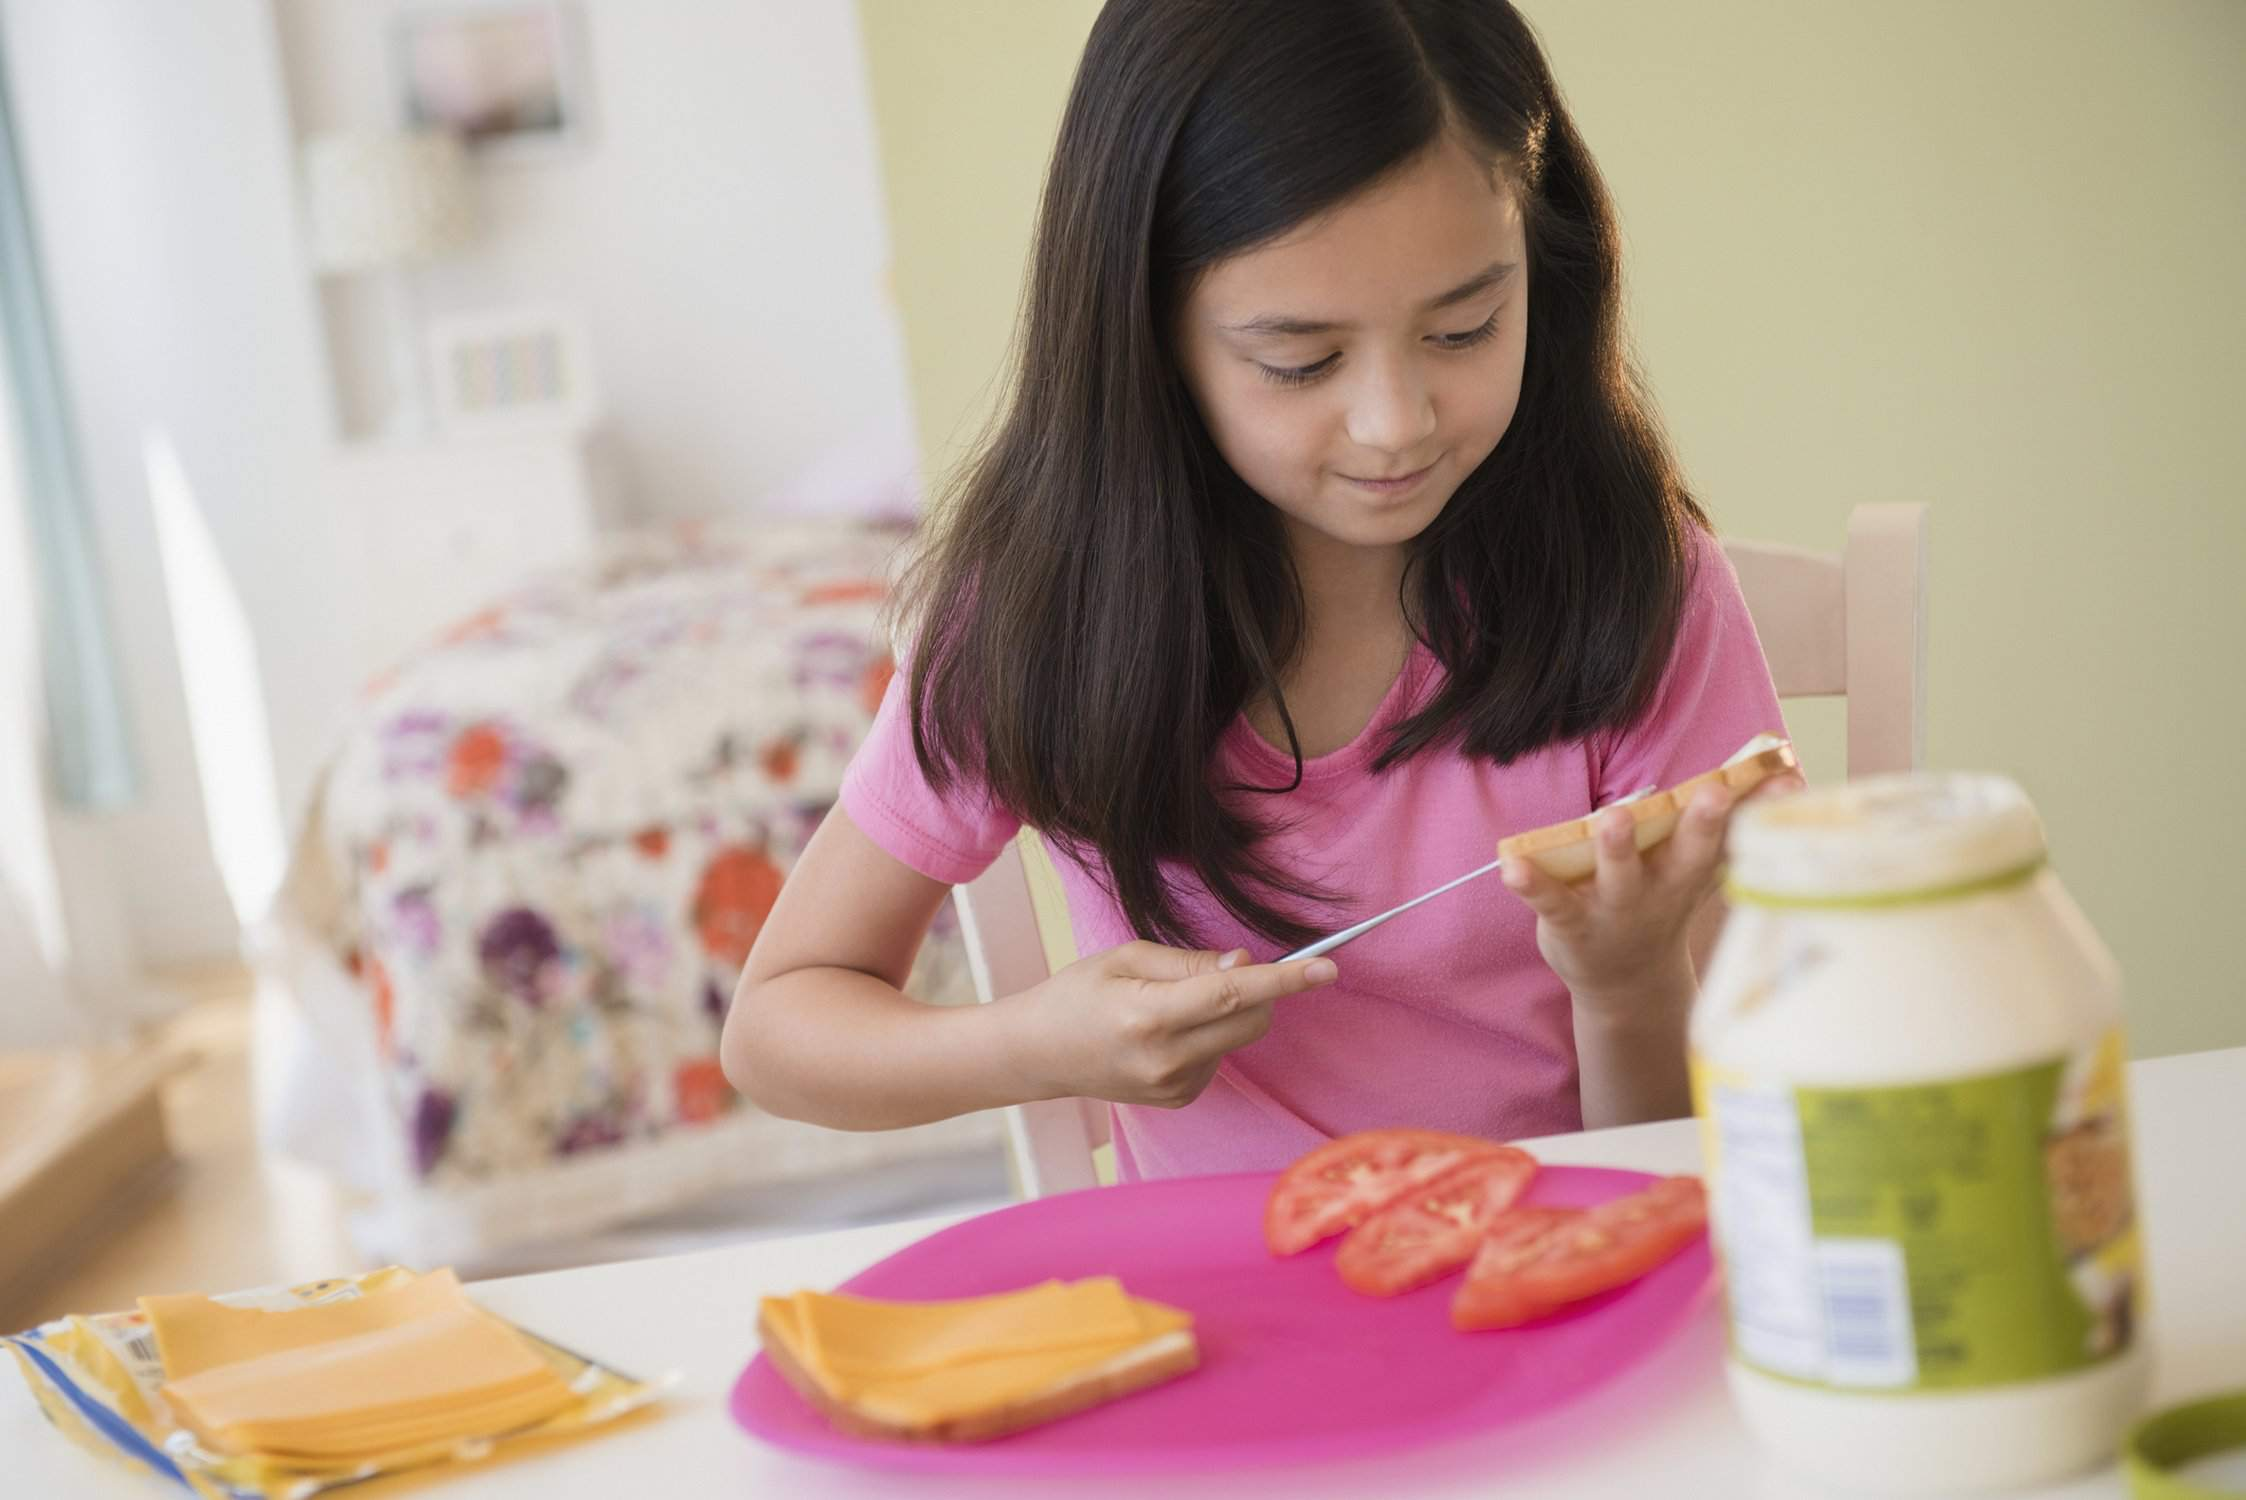 young girl making a sandwich